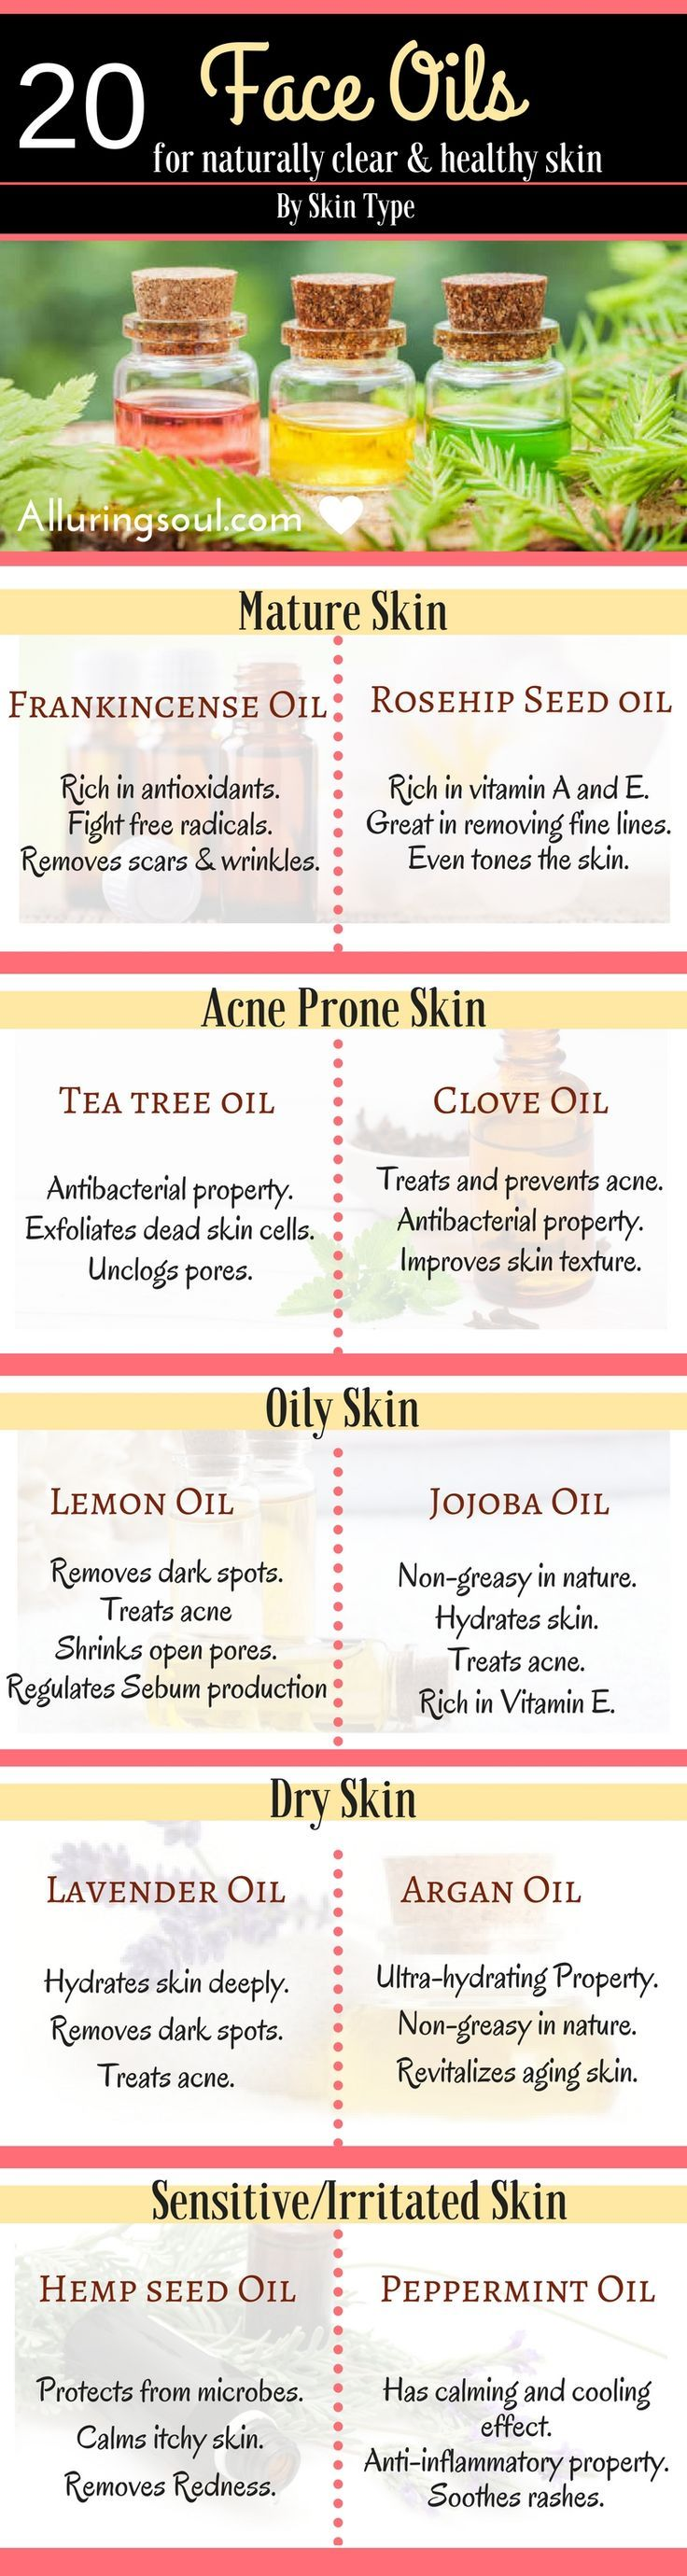 Oils That Best Match Your Natural Oil